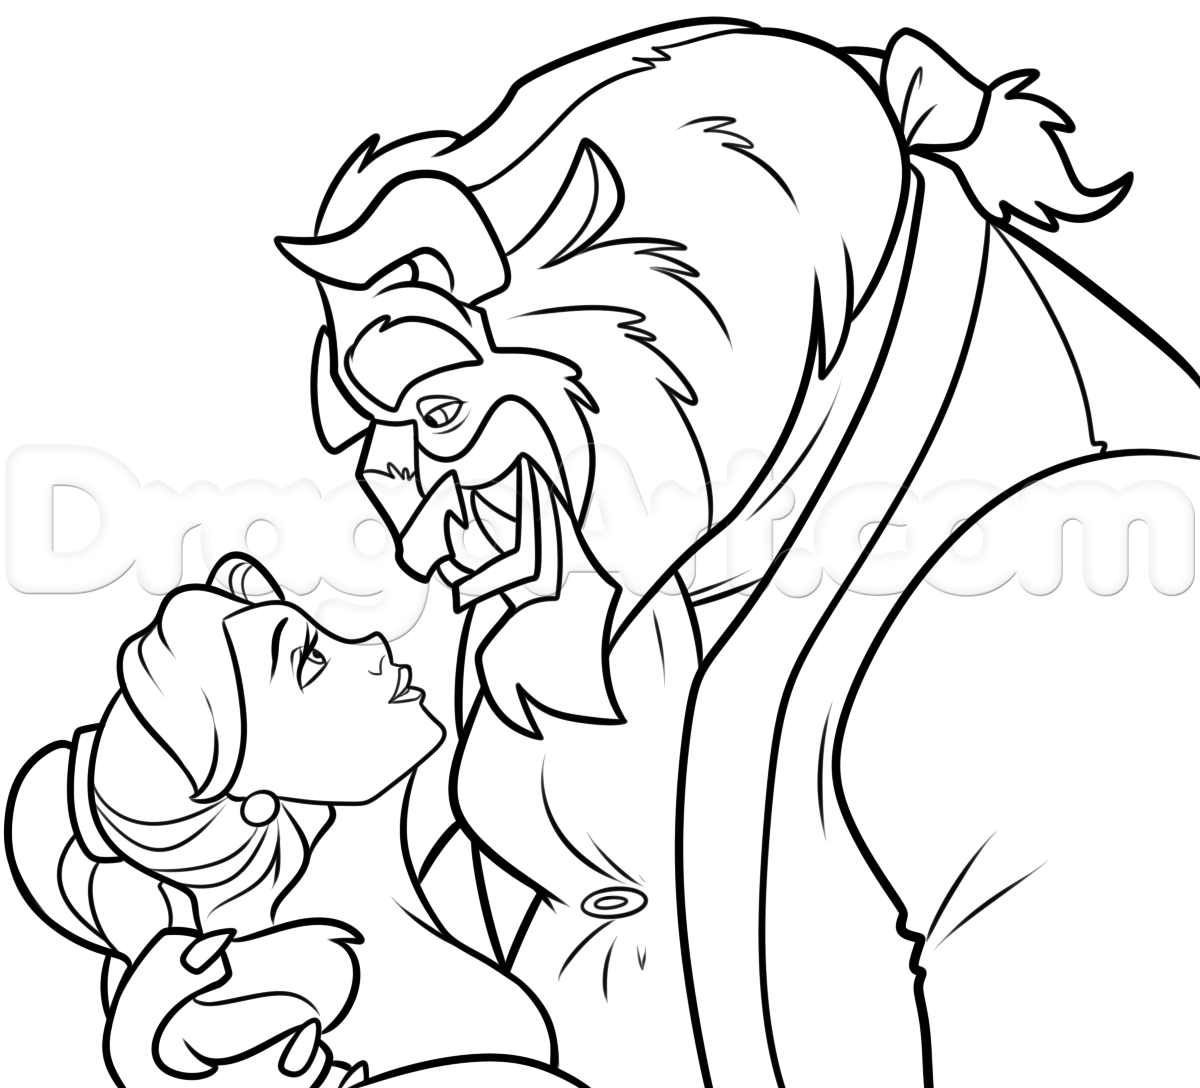 How To Draw Belle And Beast Step 10